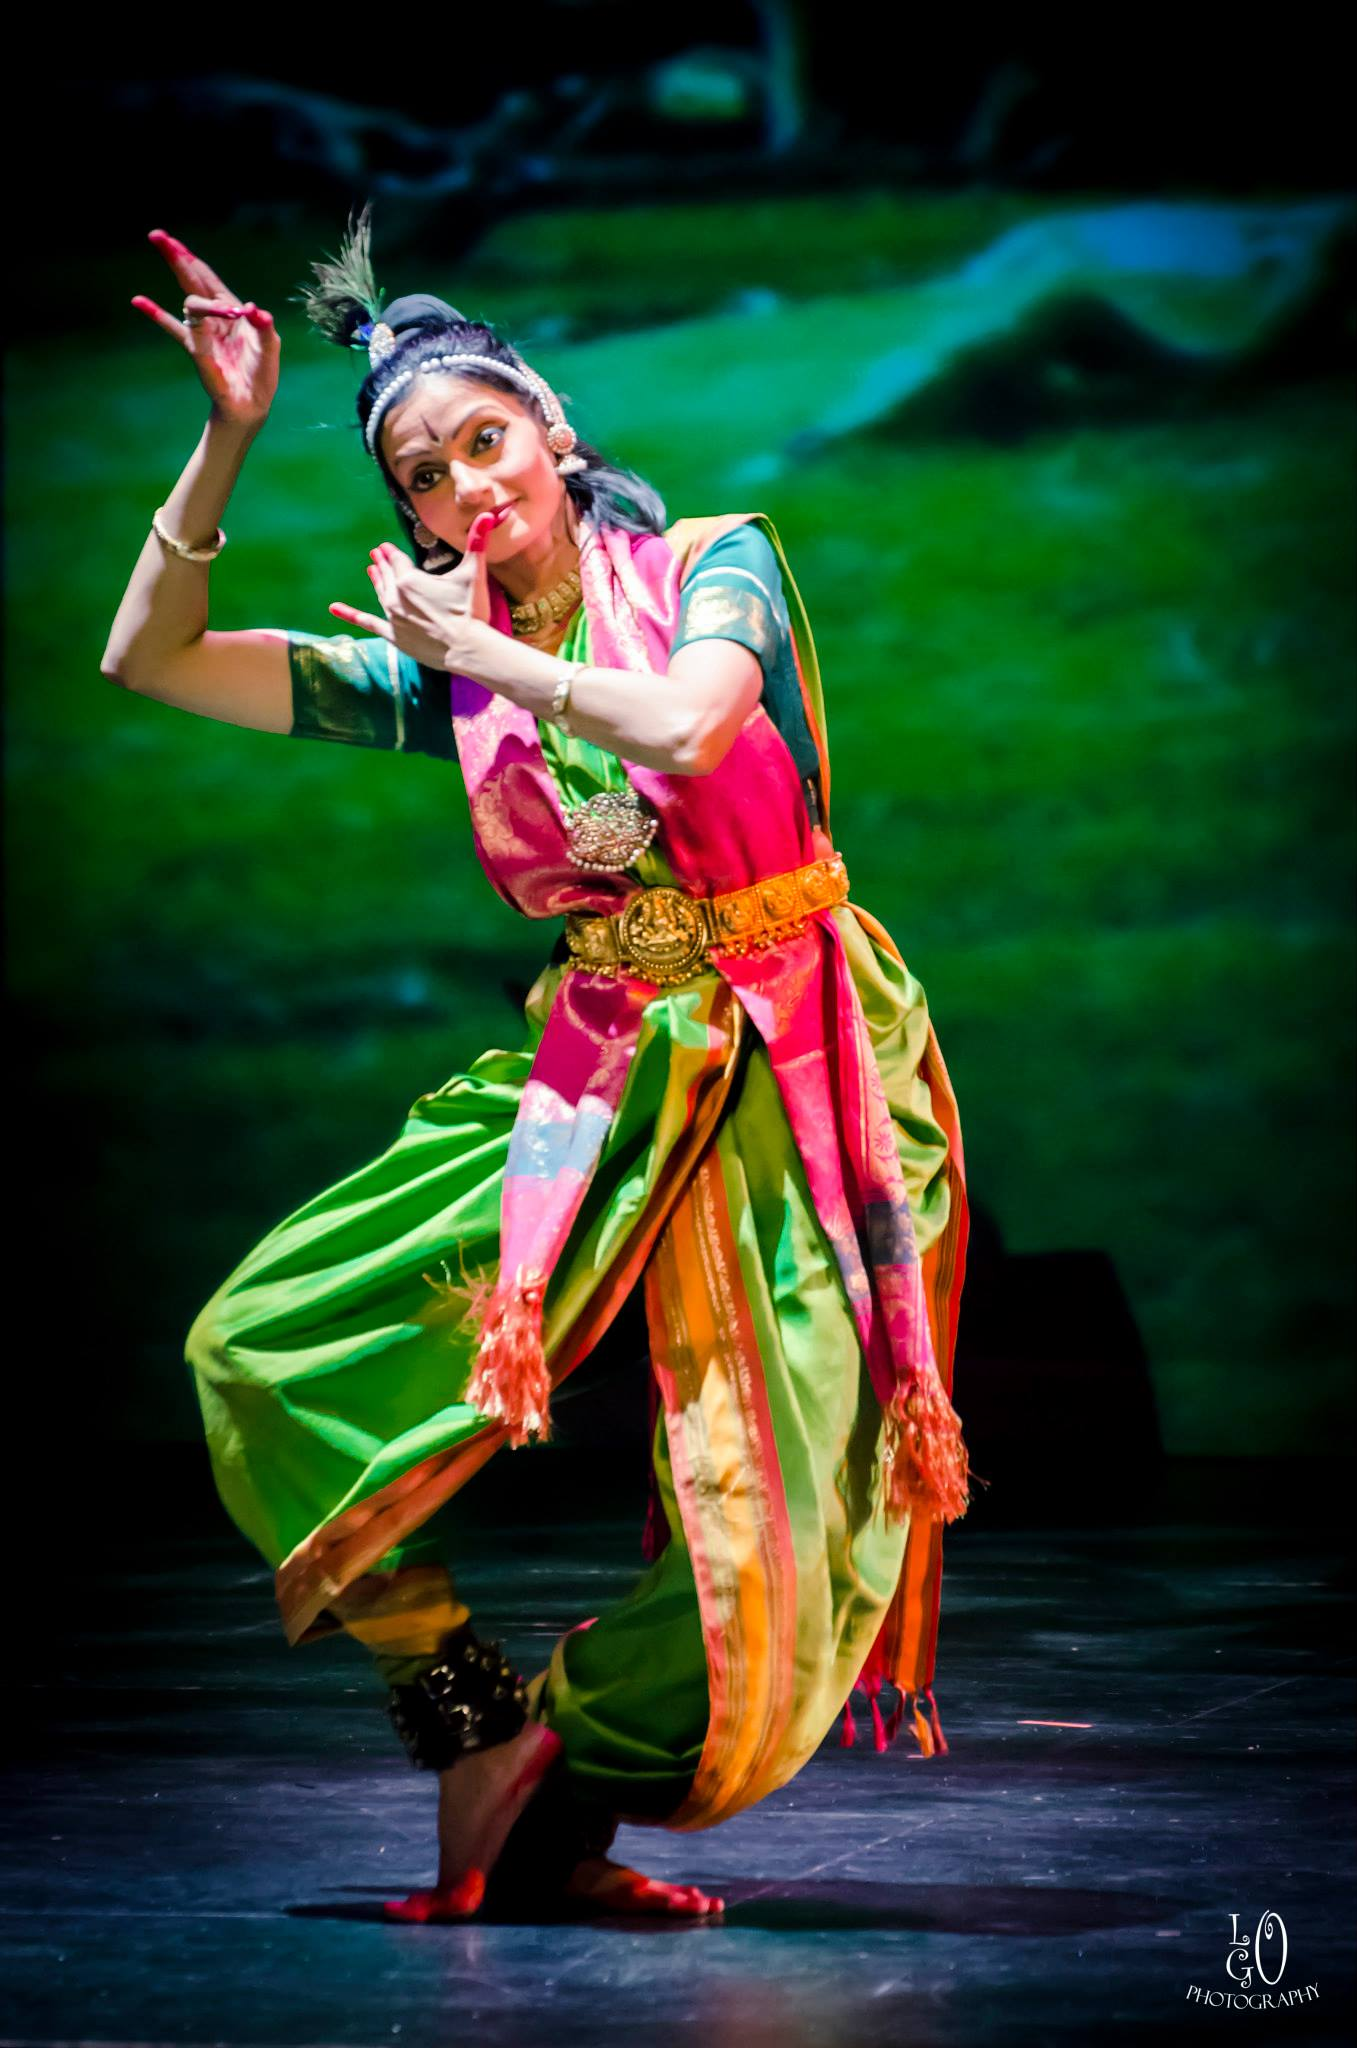 Indian dancer in colorful traditional clothing performs on stage with a green background